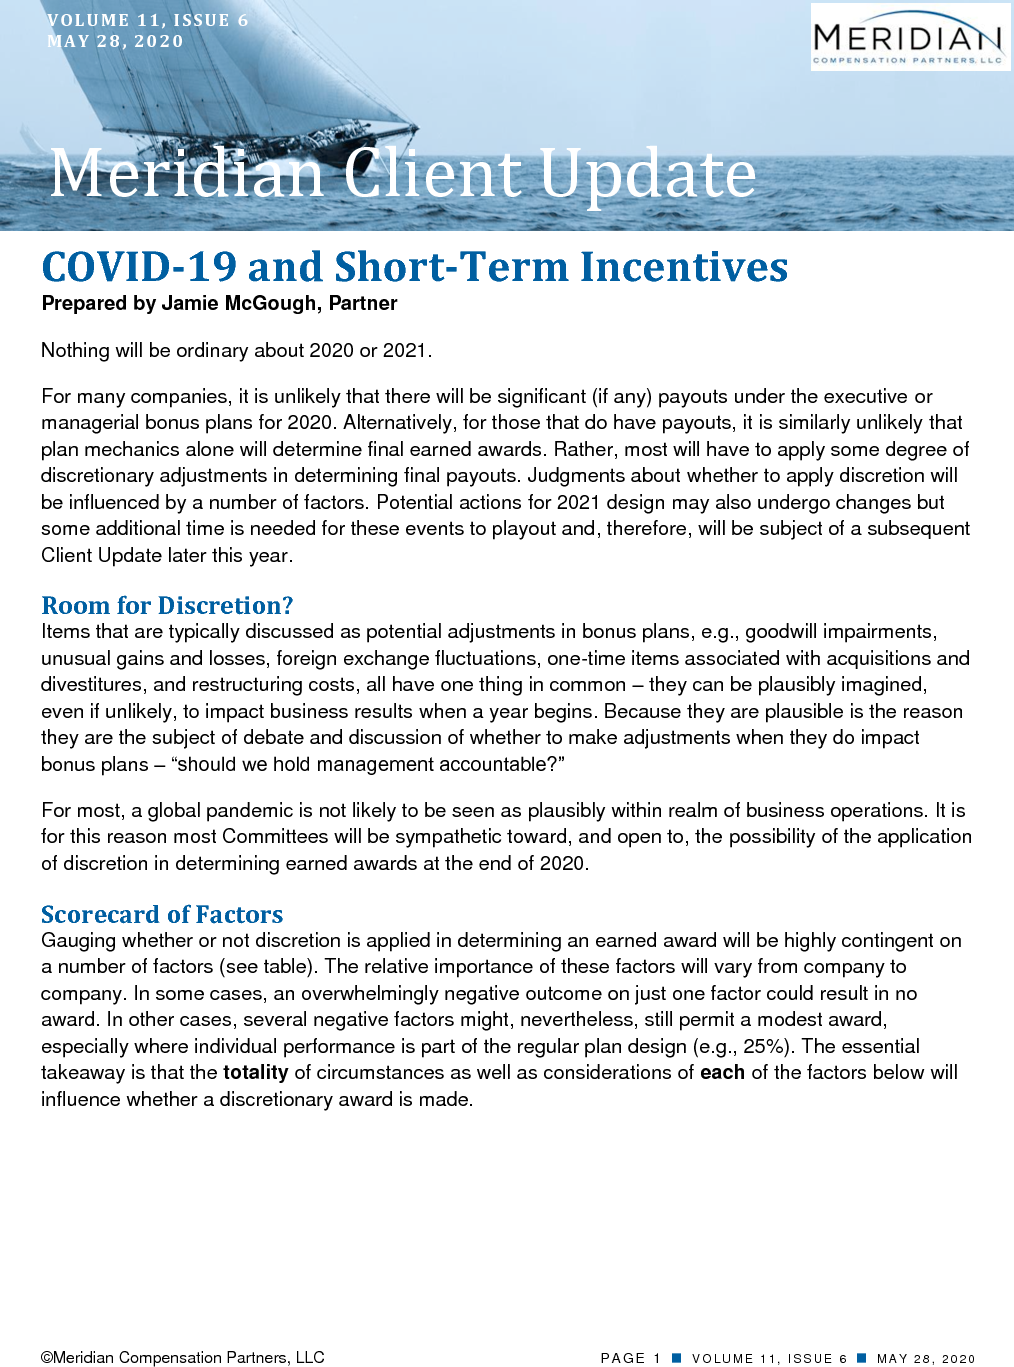 COVID-19 and Short-Term Incentives (PDF)